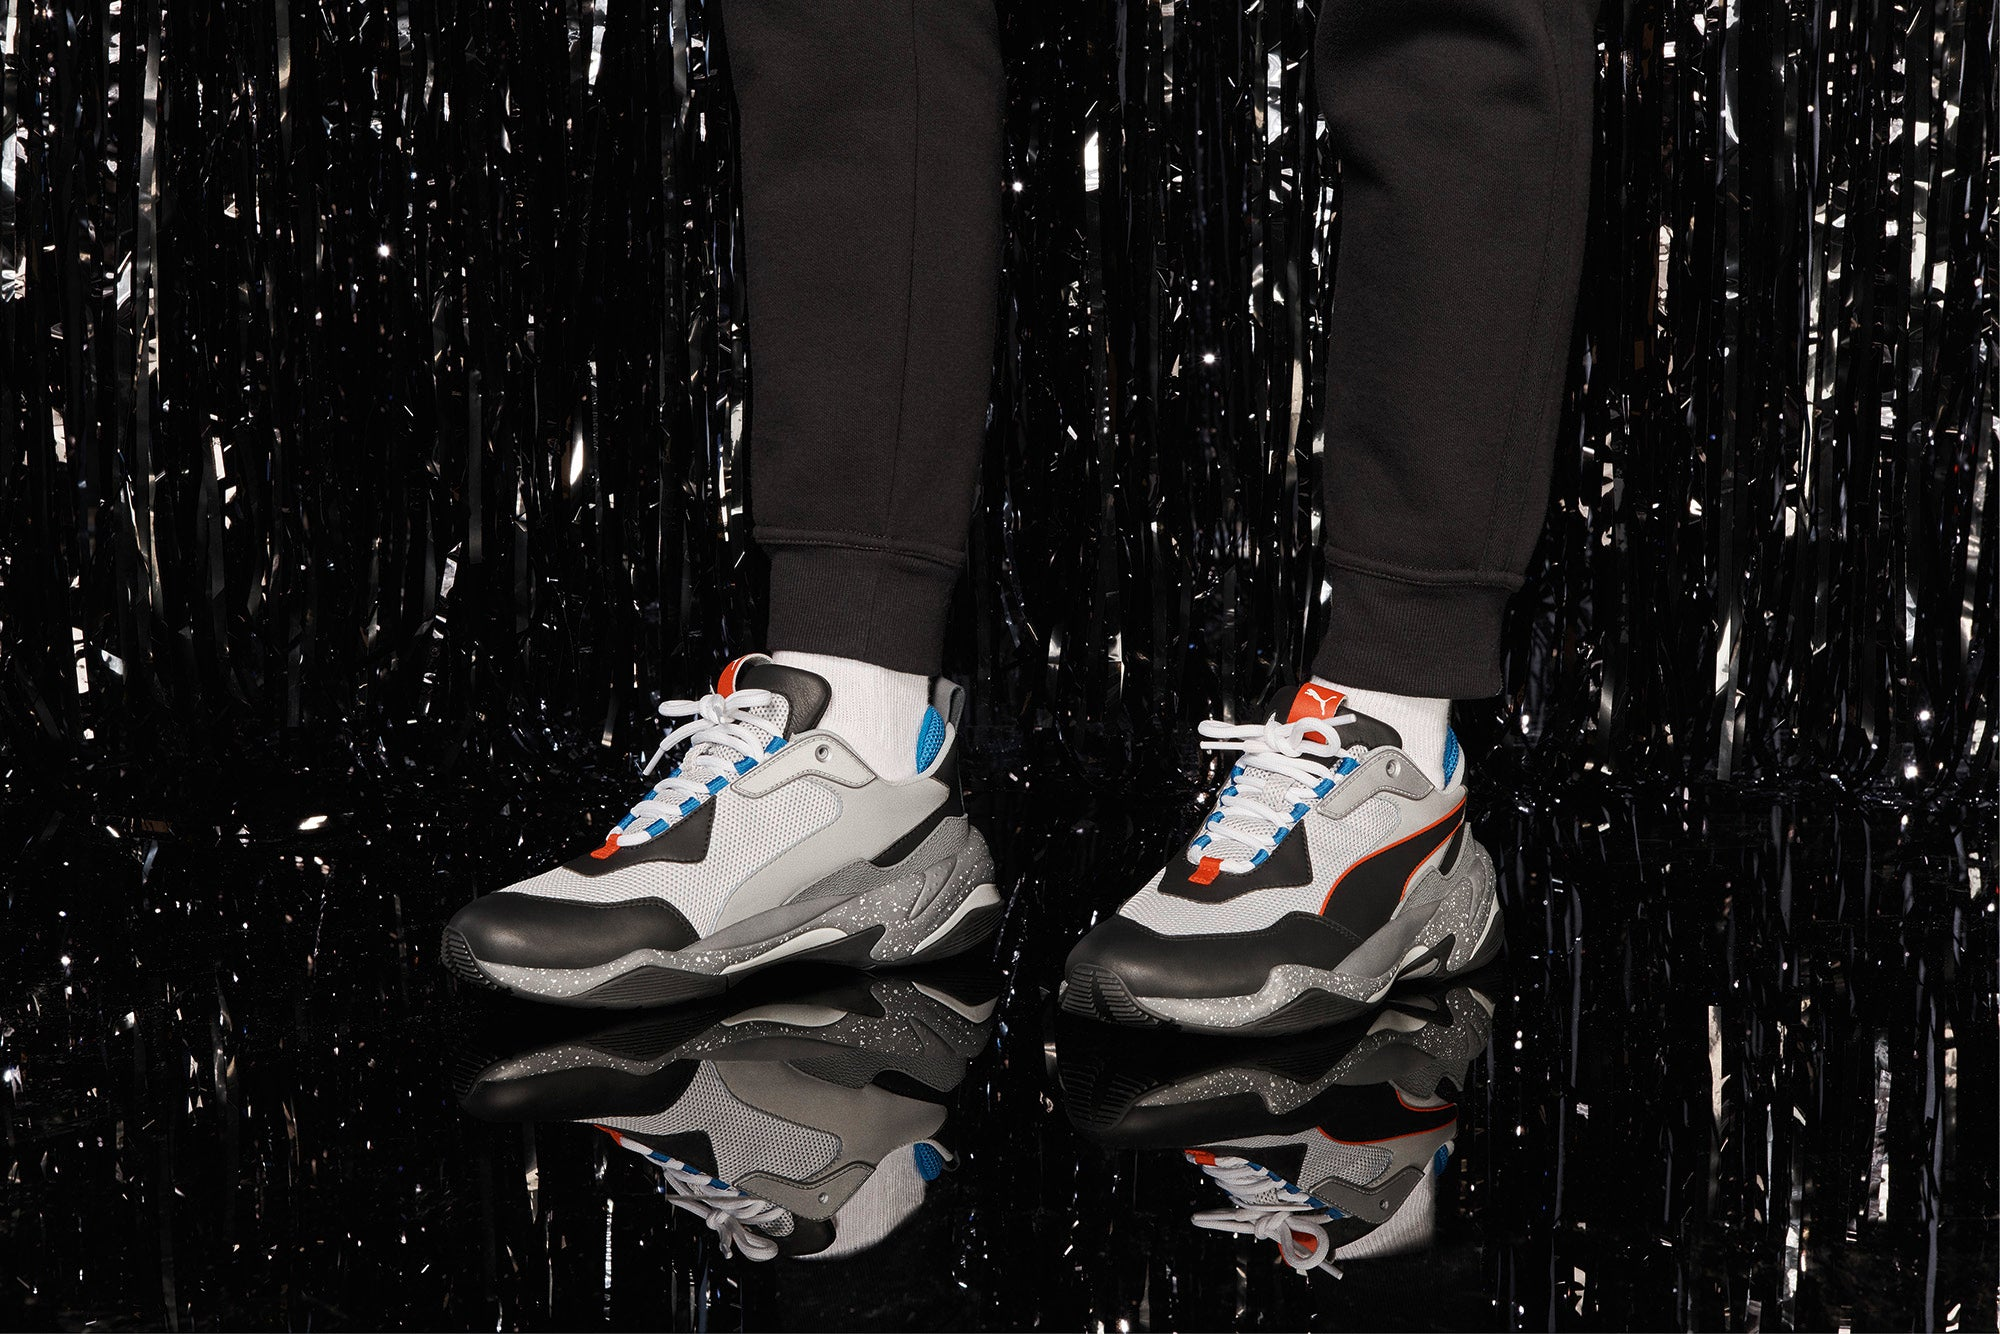 84be9bfd1969 PUMA Thunder Electric 367996-02. GREY VIOLET-PUMA BLACK-QUIET SHADE Price   £109.00. Launch  Thursday 21st June ONLINE  00 01BST